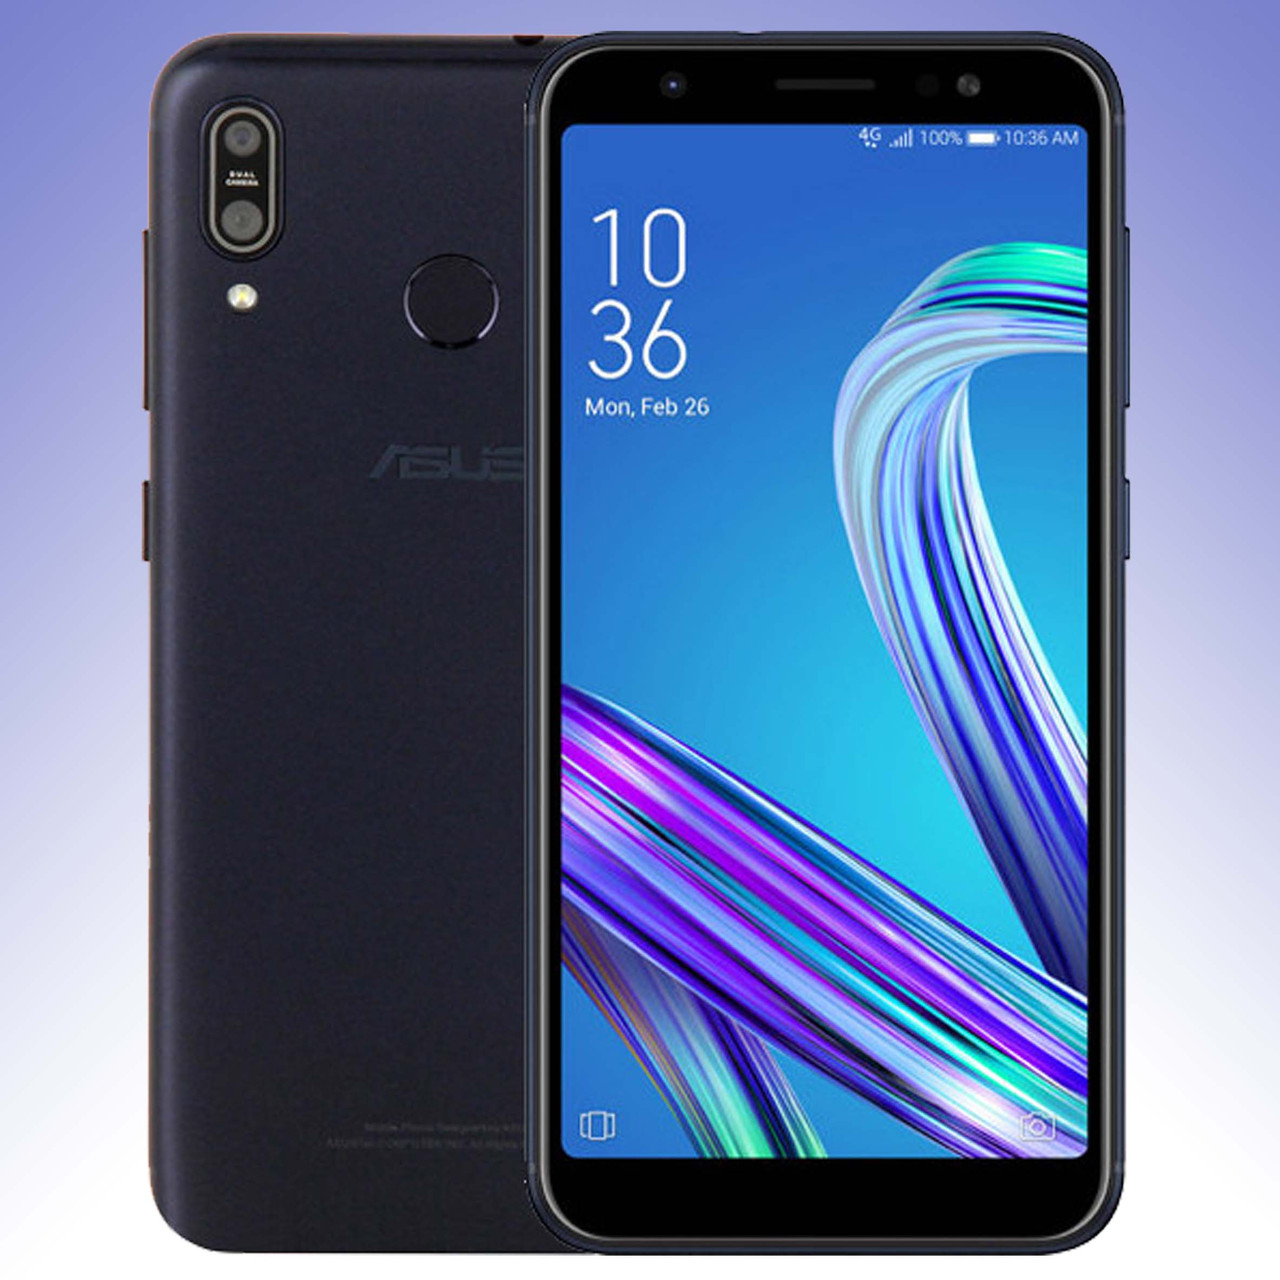 Asus Zenfone Max M1 5.5"